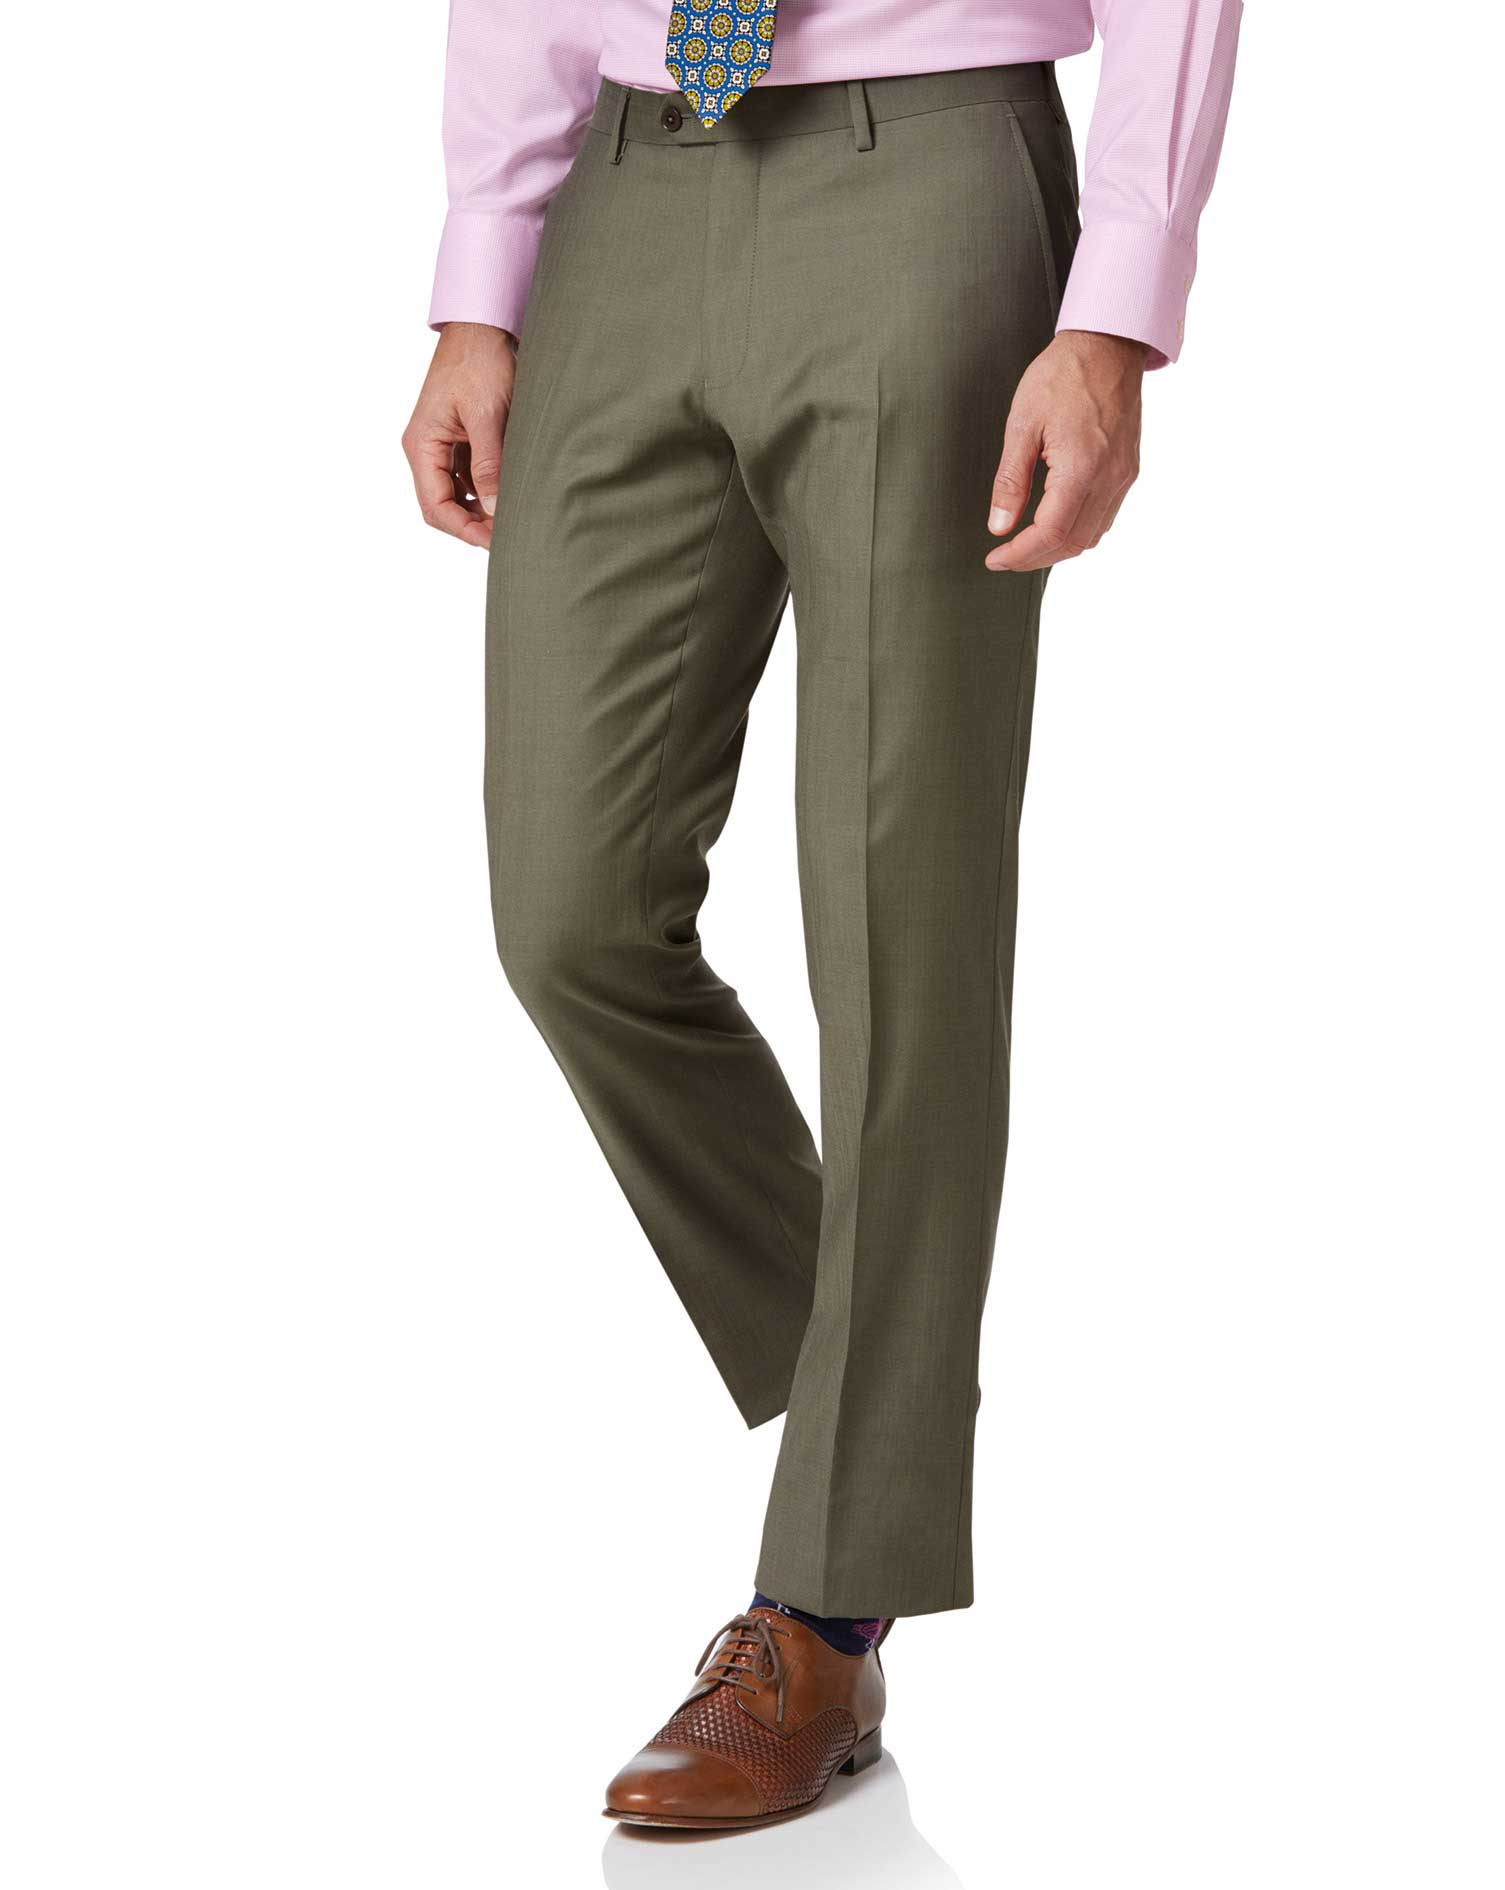 Olive Slim Fit Twill Business Suit Trousers Size W38 L38 by Charles Tyrwhitt